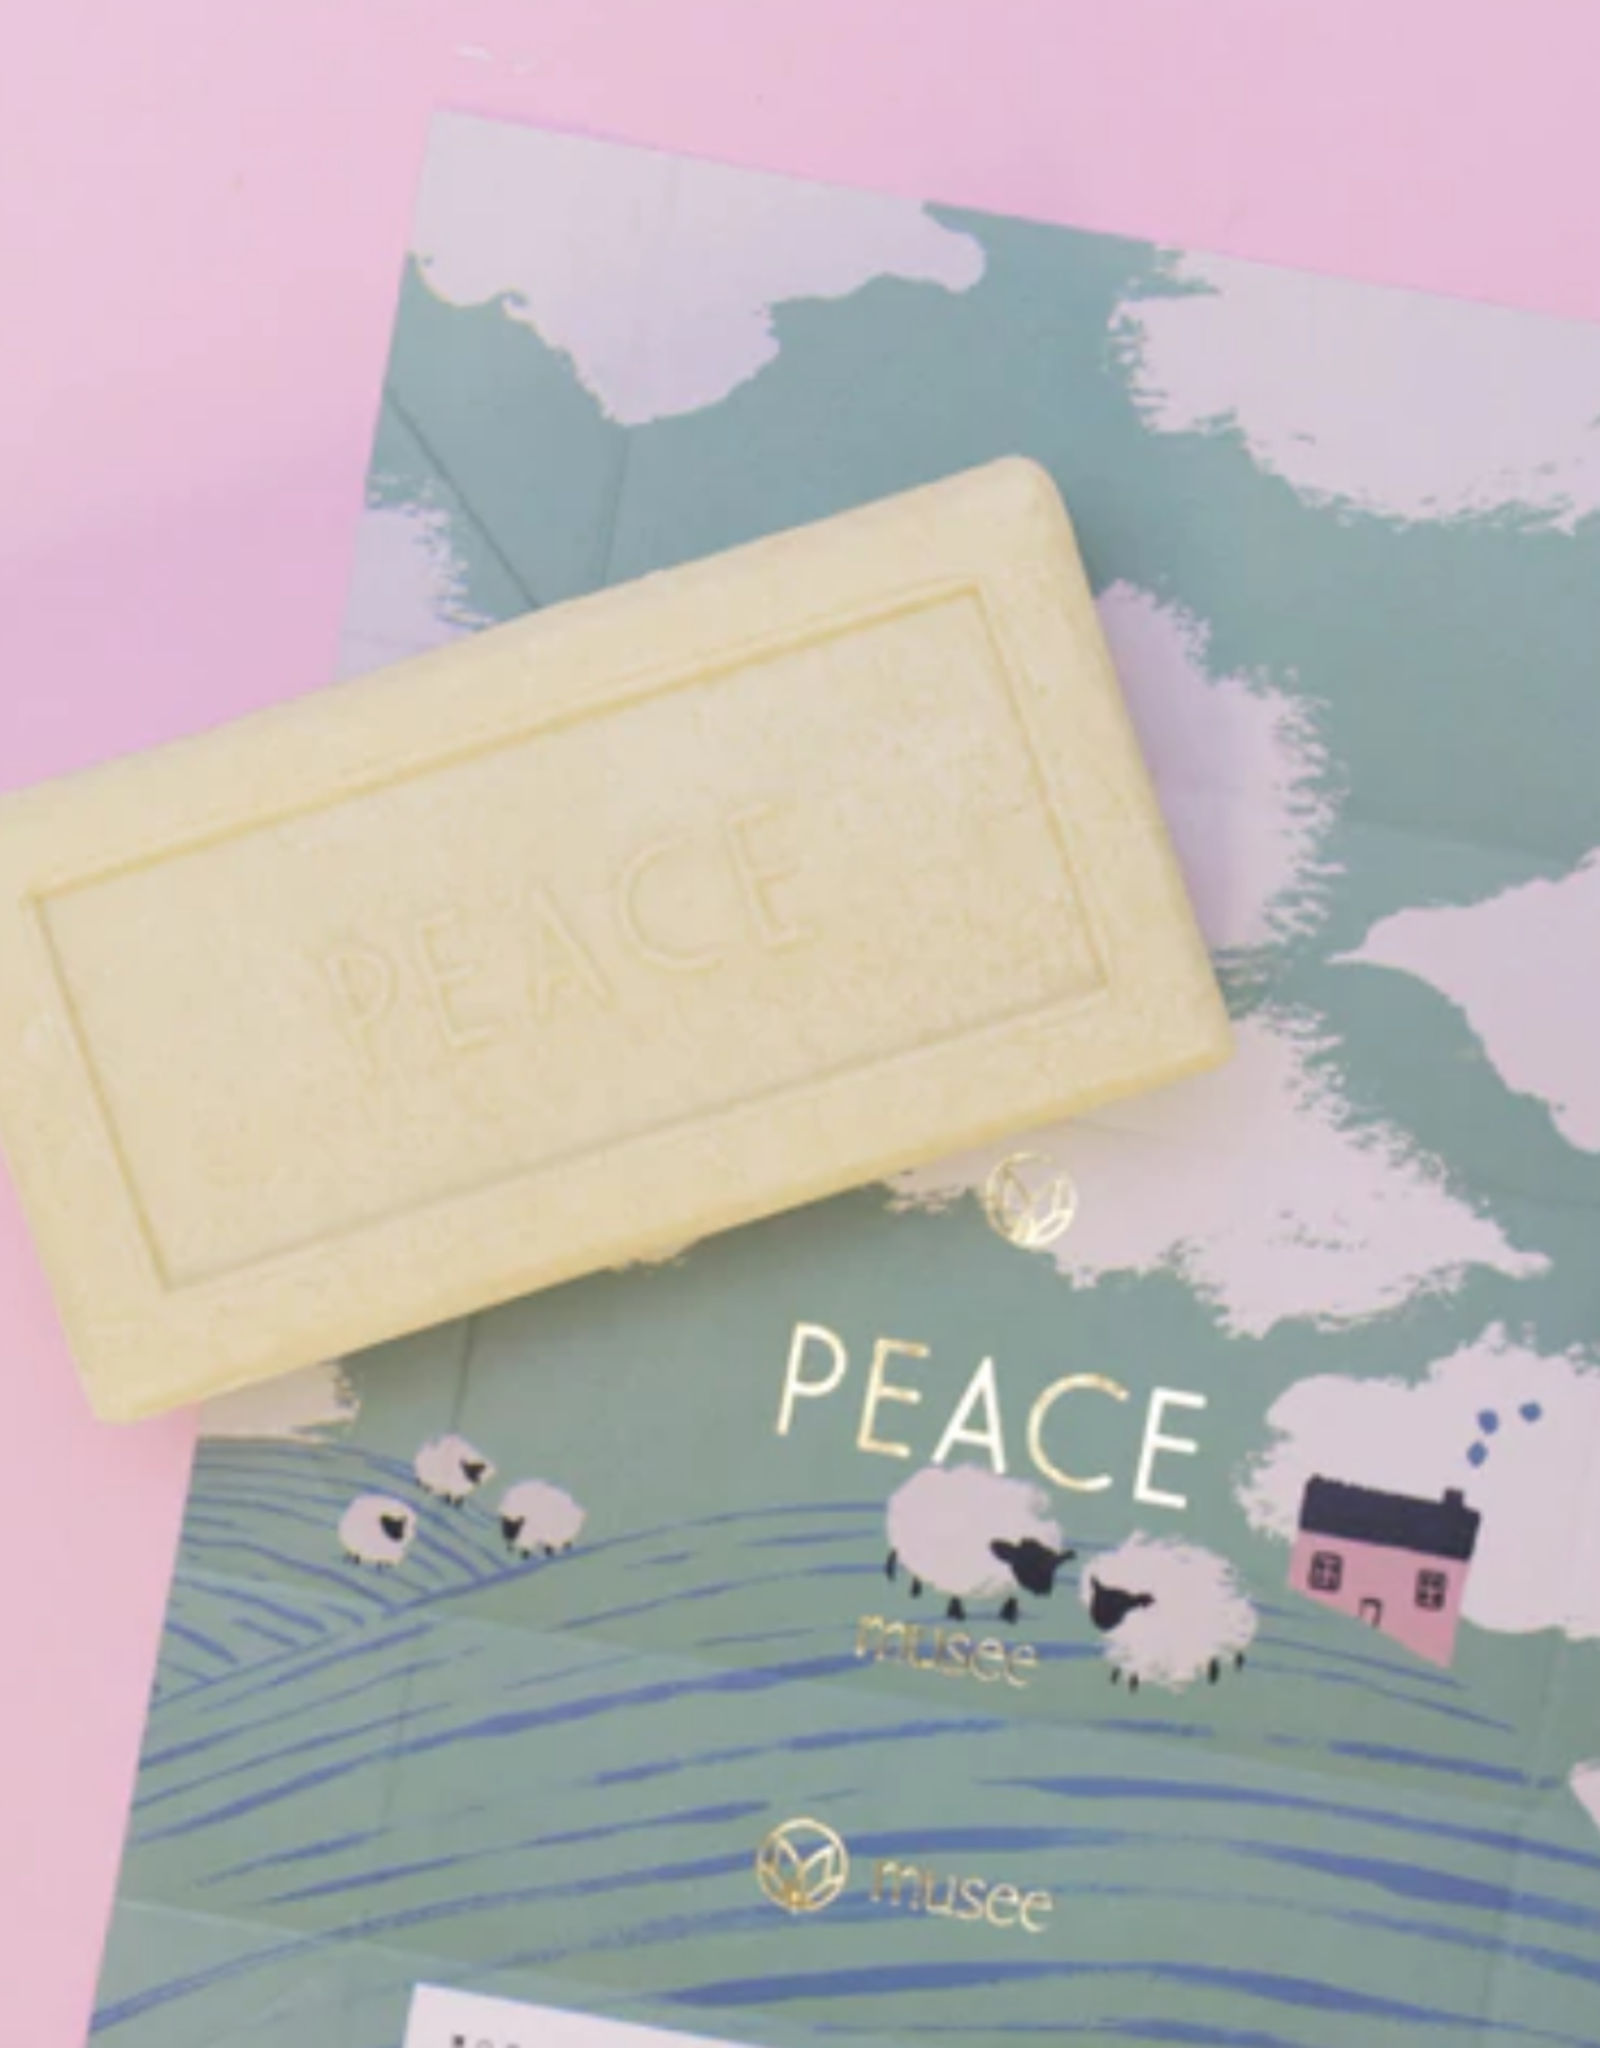 Musee Peace Soap